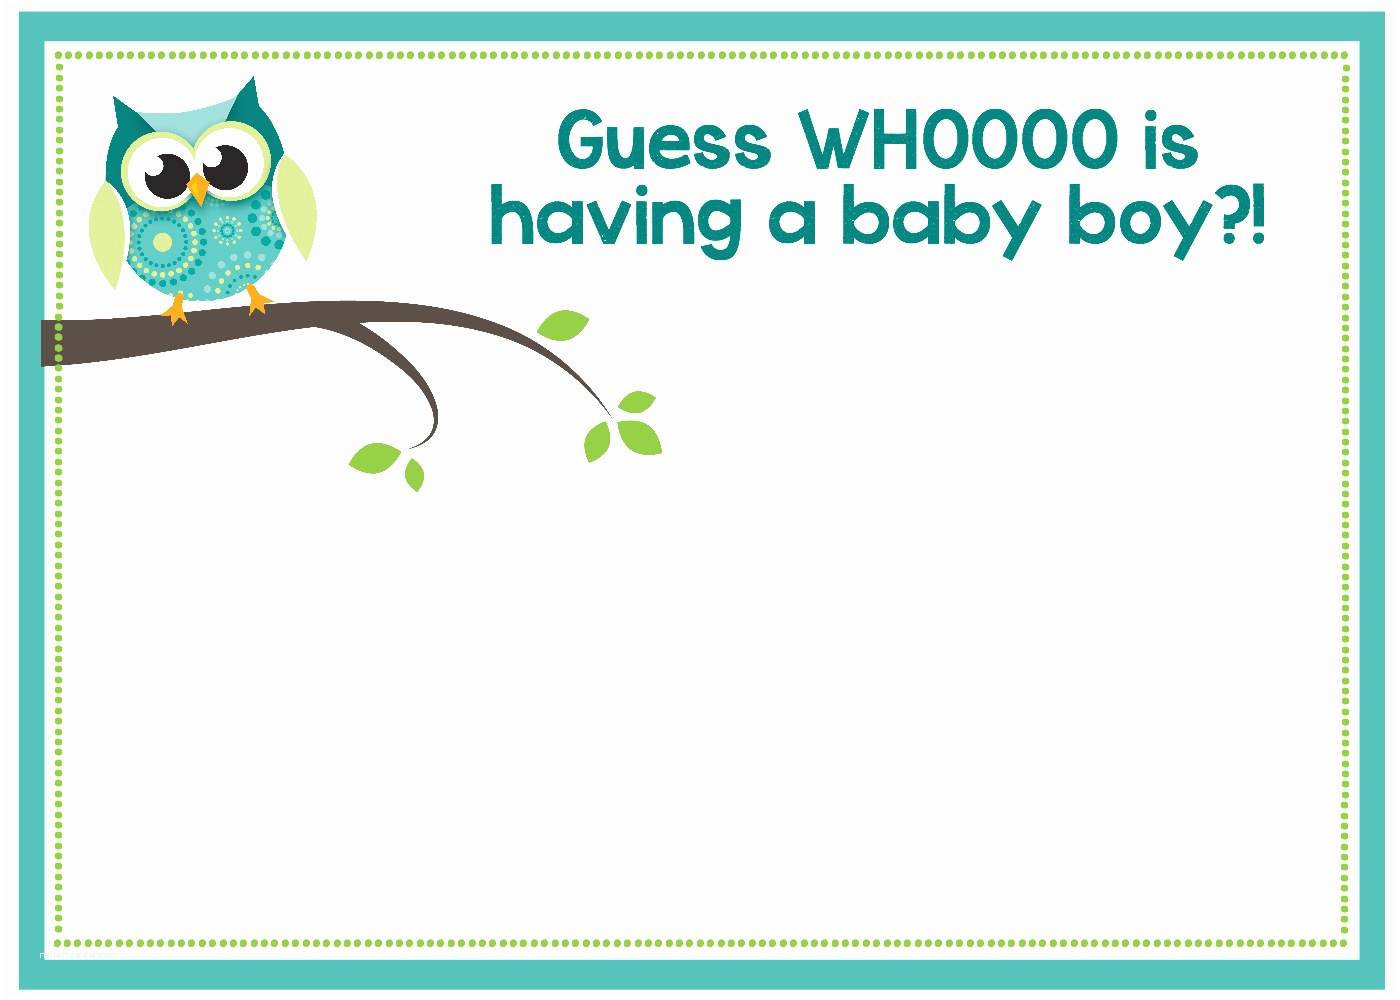 Baby Boy Baby Shower Invitations Free Printable Owl Baby Shower Invitations & Other